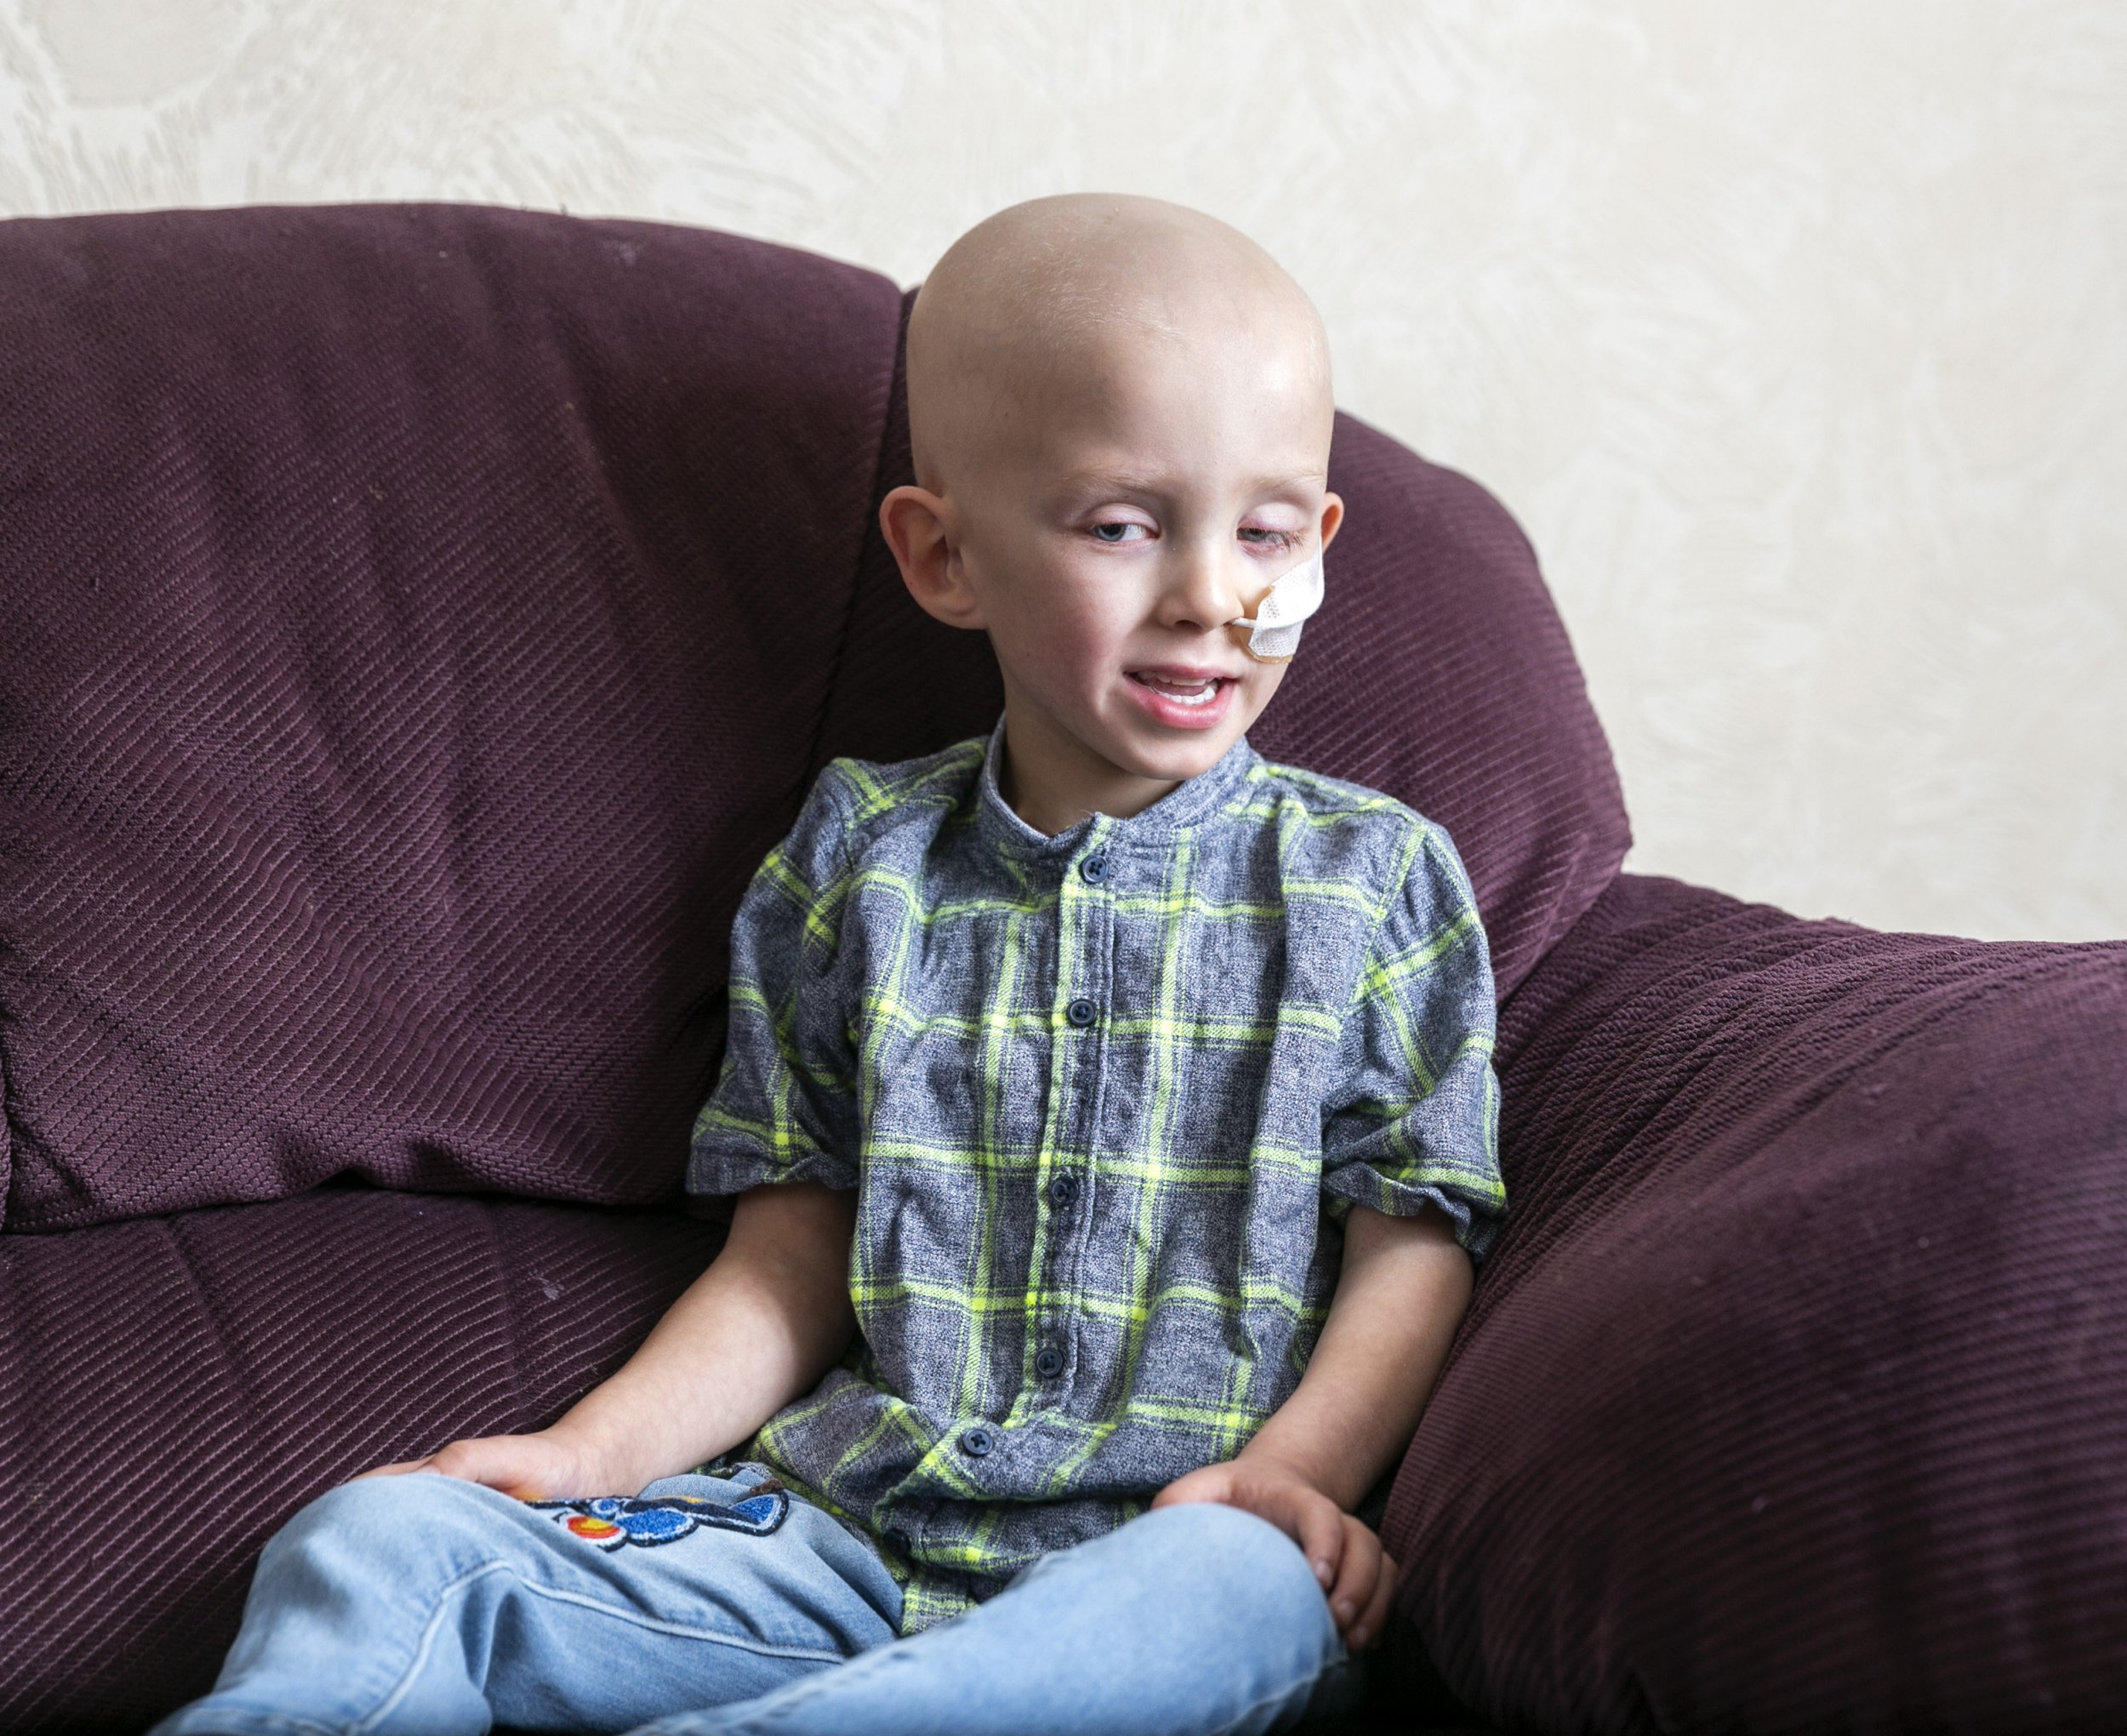 Lucas Hellowell, 5, pictured at his house in Halifax, West Yorkshire. See Ross Parry copy RPYCANCER: The parents of Britain's youngest testicular cancer fighter discovered his tumour the size of a GOLF BALL as they helped him to get dressed. Brave five-year-old Lucas Hellowell has successfully undergone an operation to remove the huge tumour and is courageously undergoing chemotherapy. His parents Mel Speight, 25 and Jonathan Hellowell, 28, discovered the tumour on July 6 this year while dressing him as he was off school due to having bellyache.